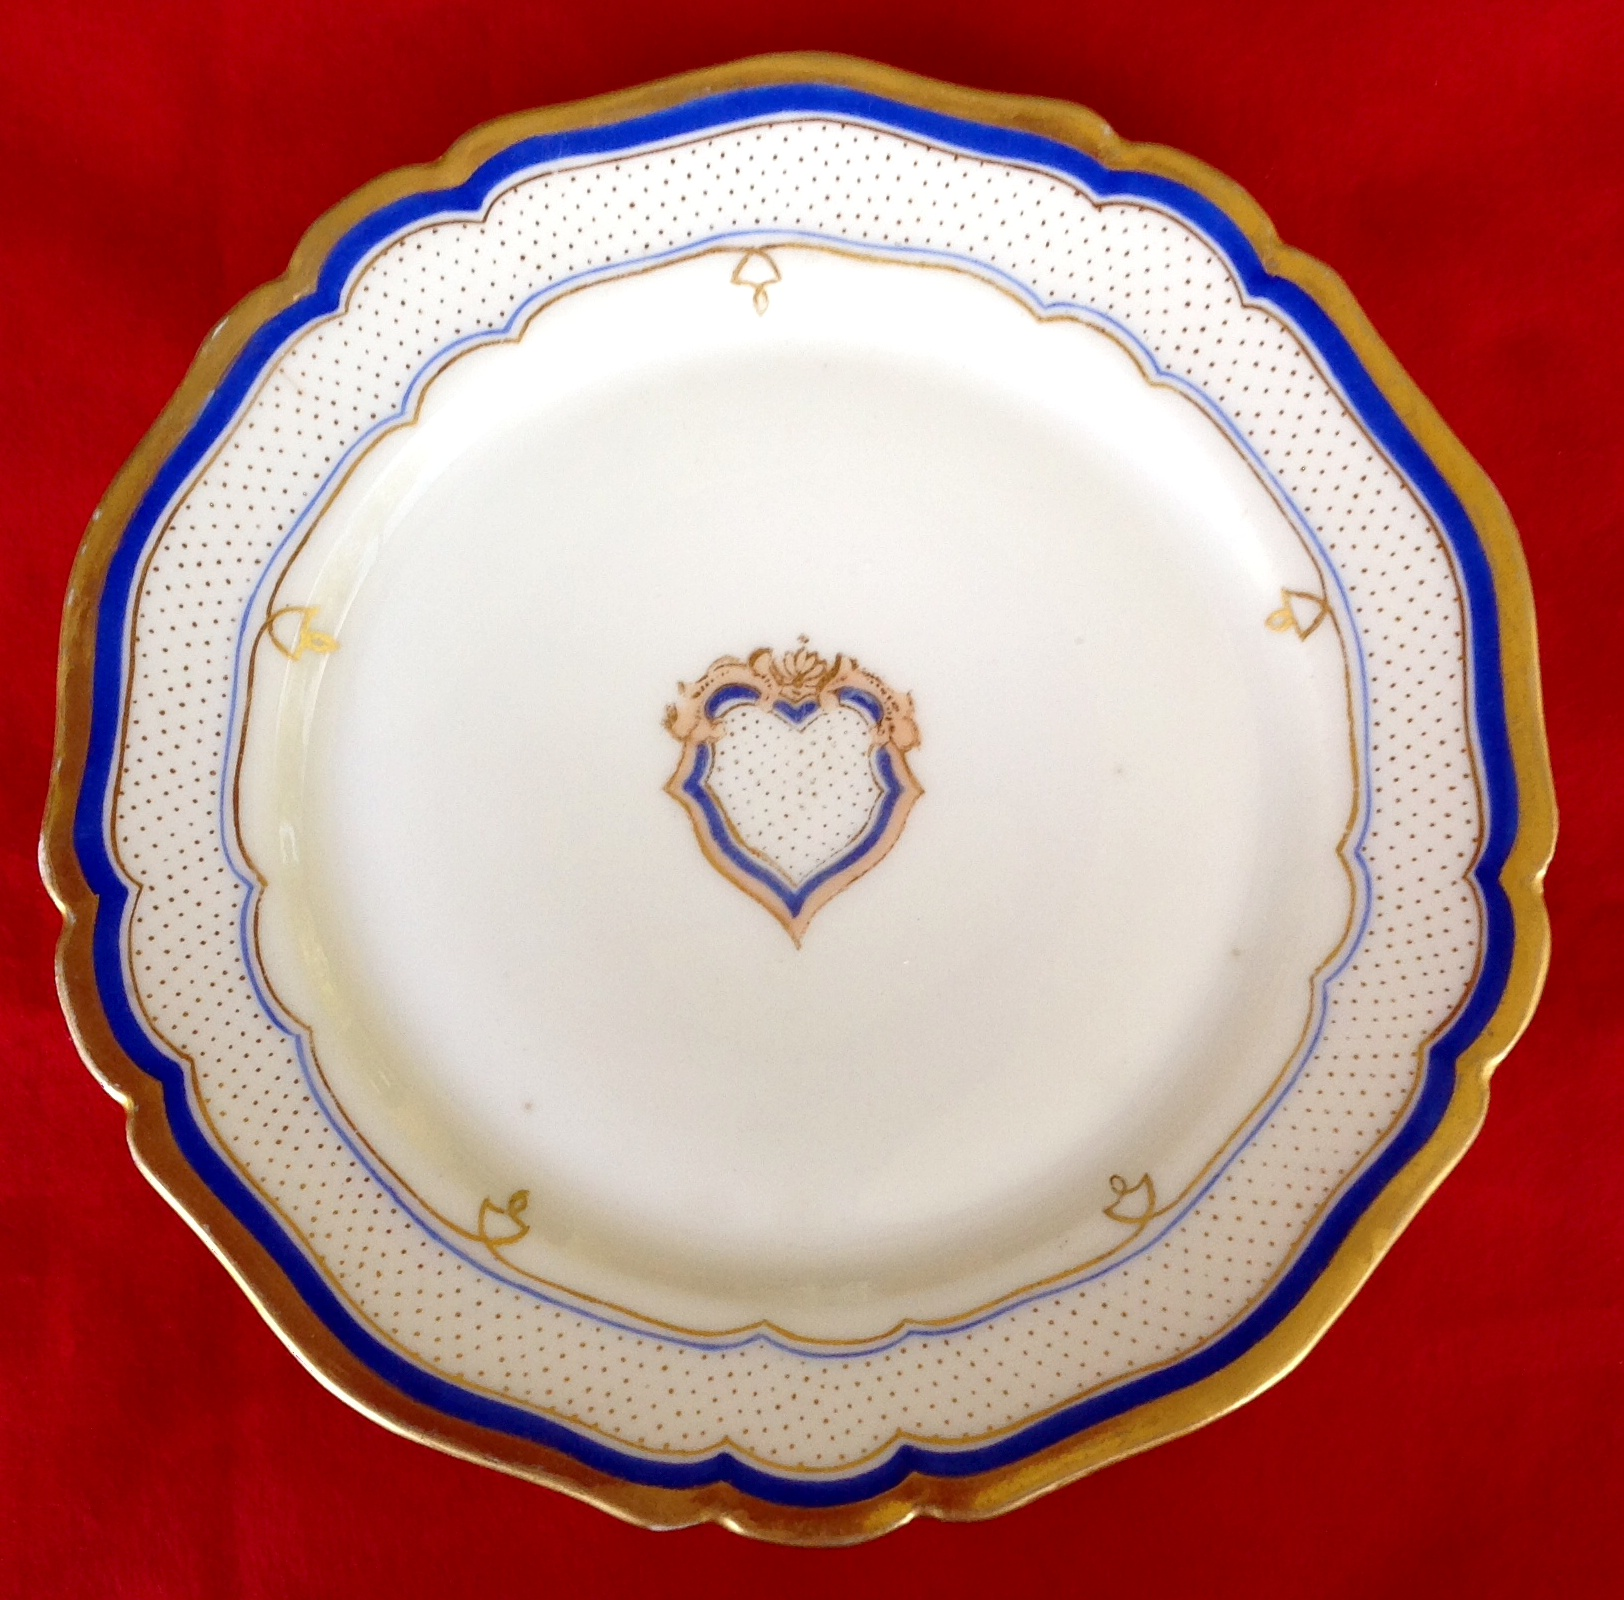 pierce white house china plate